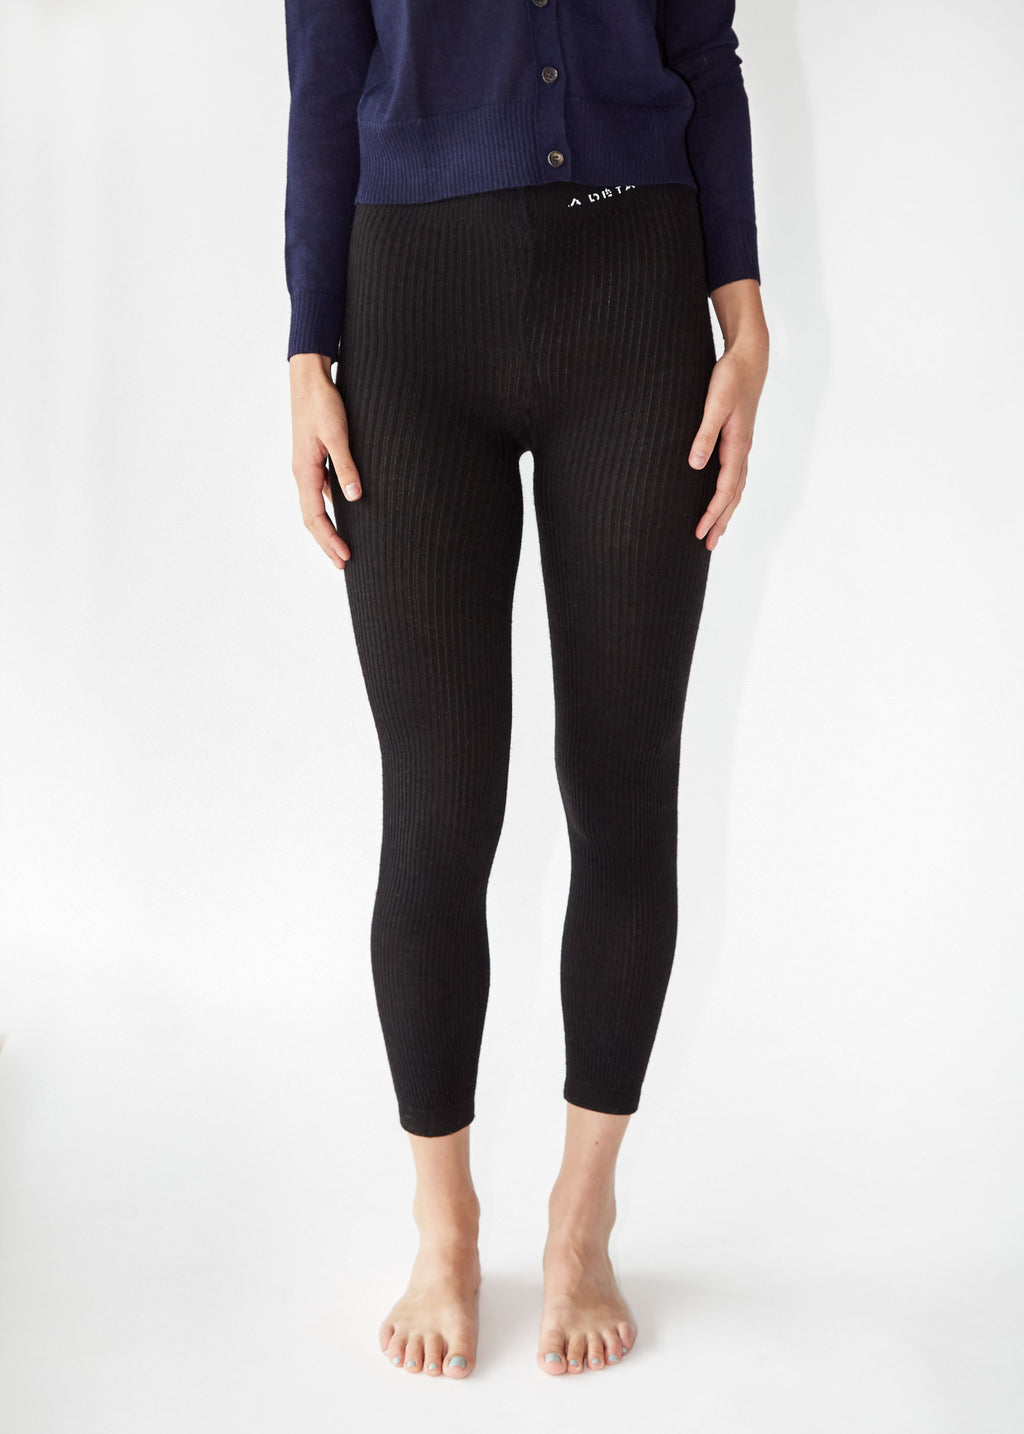 Ribbed Knit Leggings in Black Alpaca